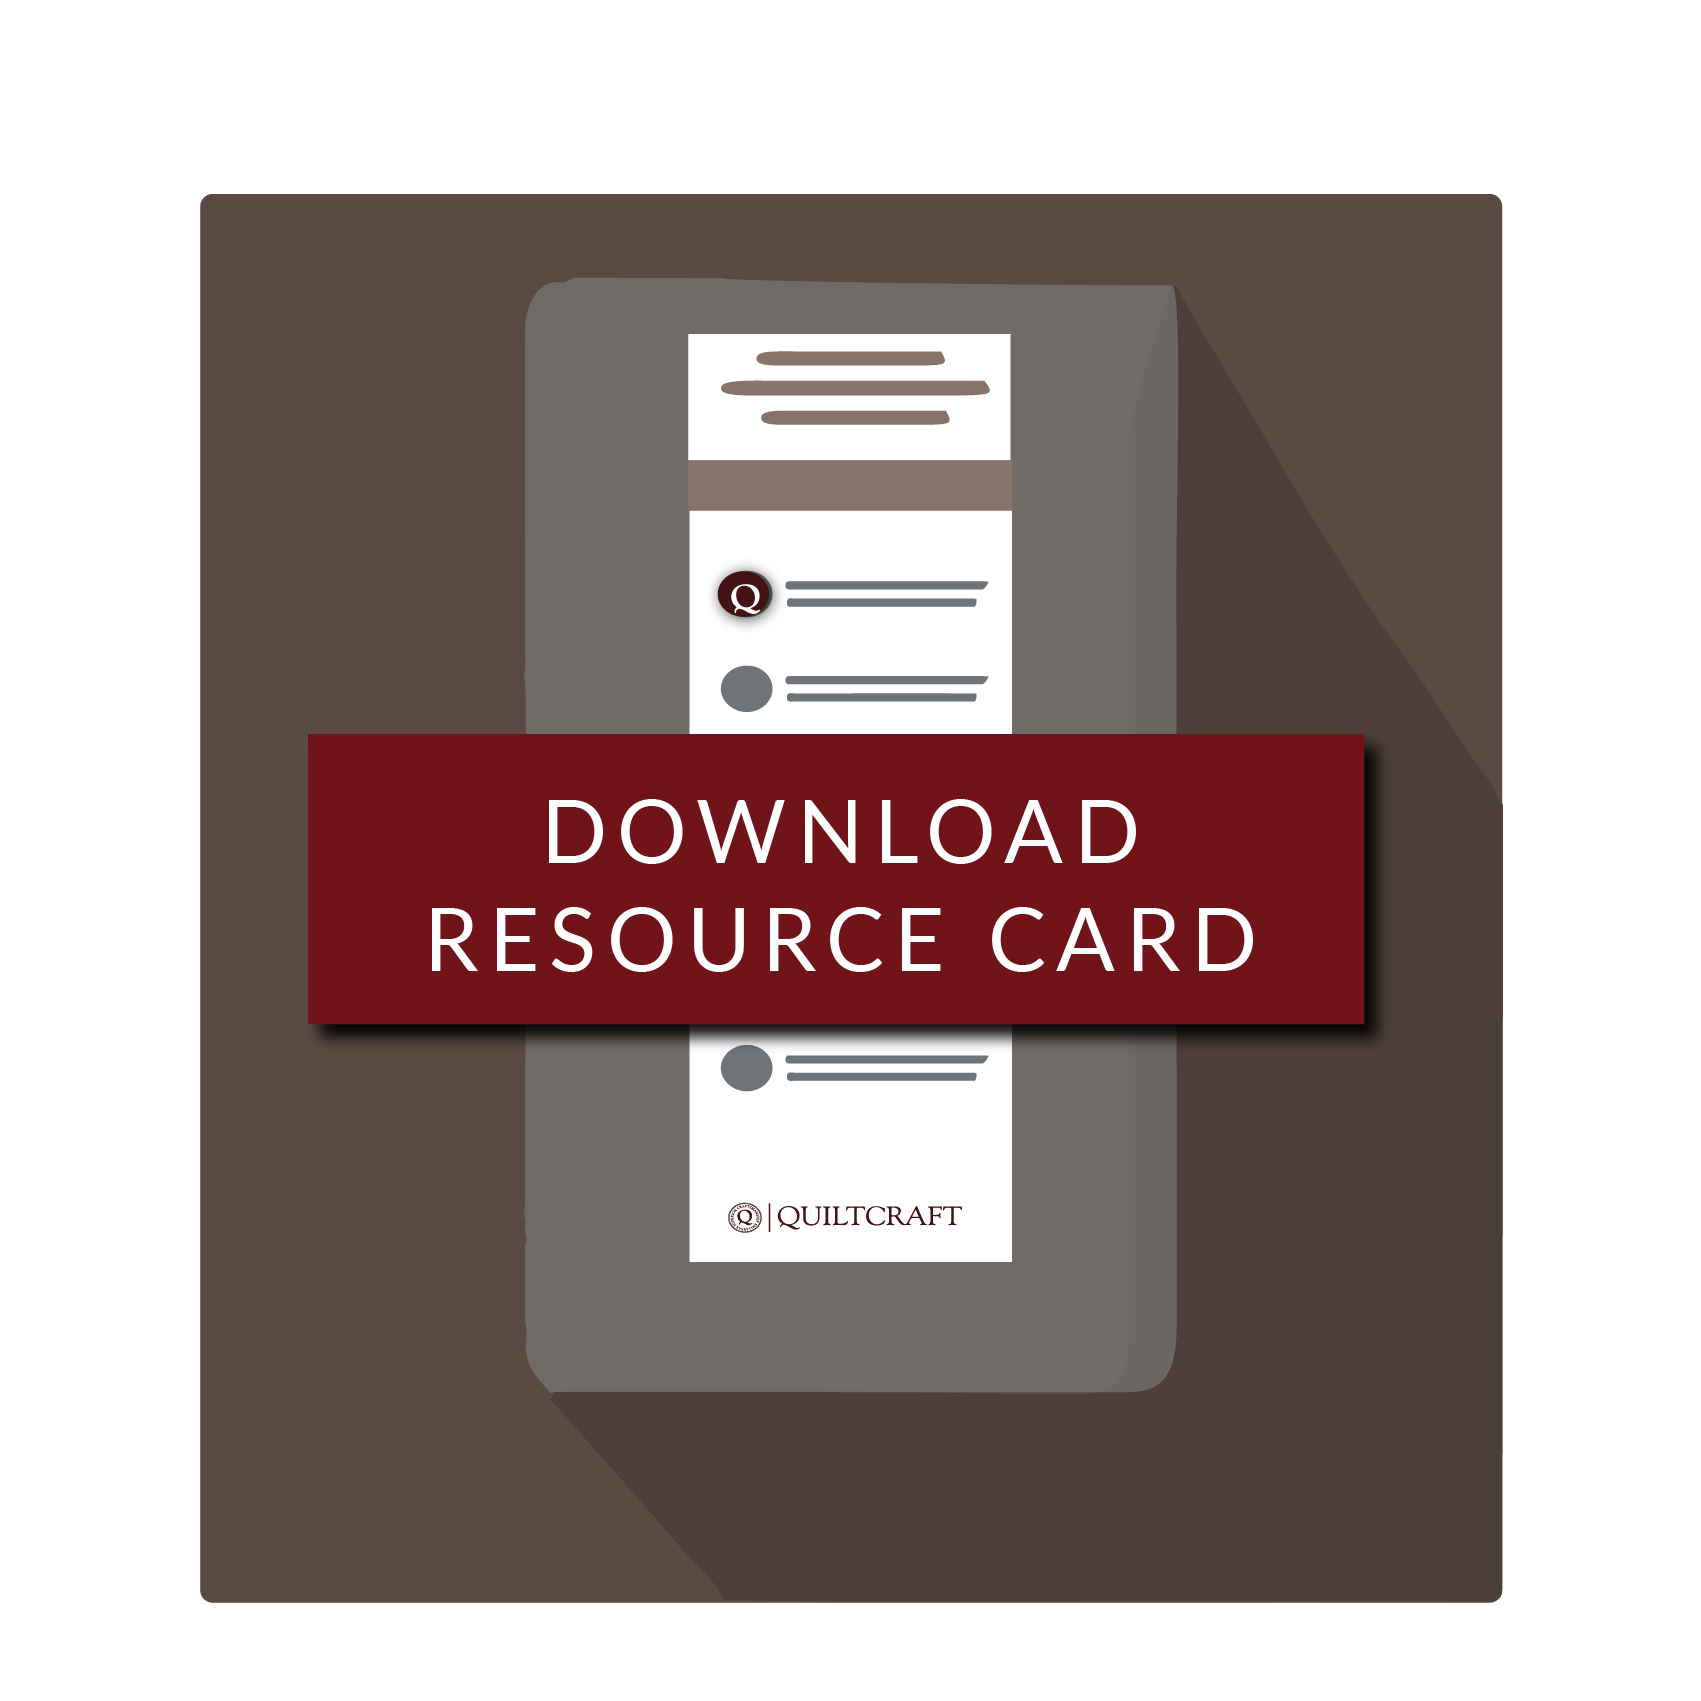 RESOURCES-ICON-03-02.png